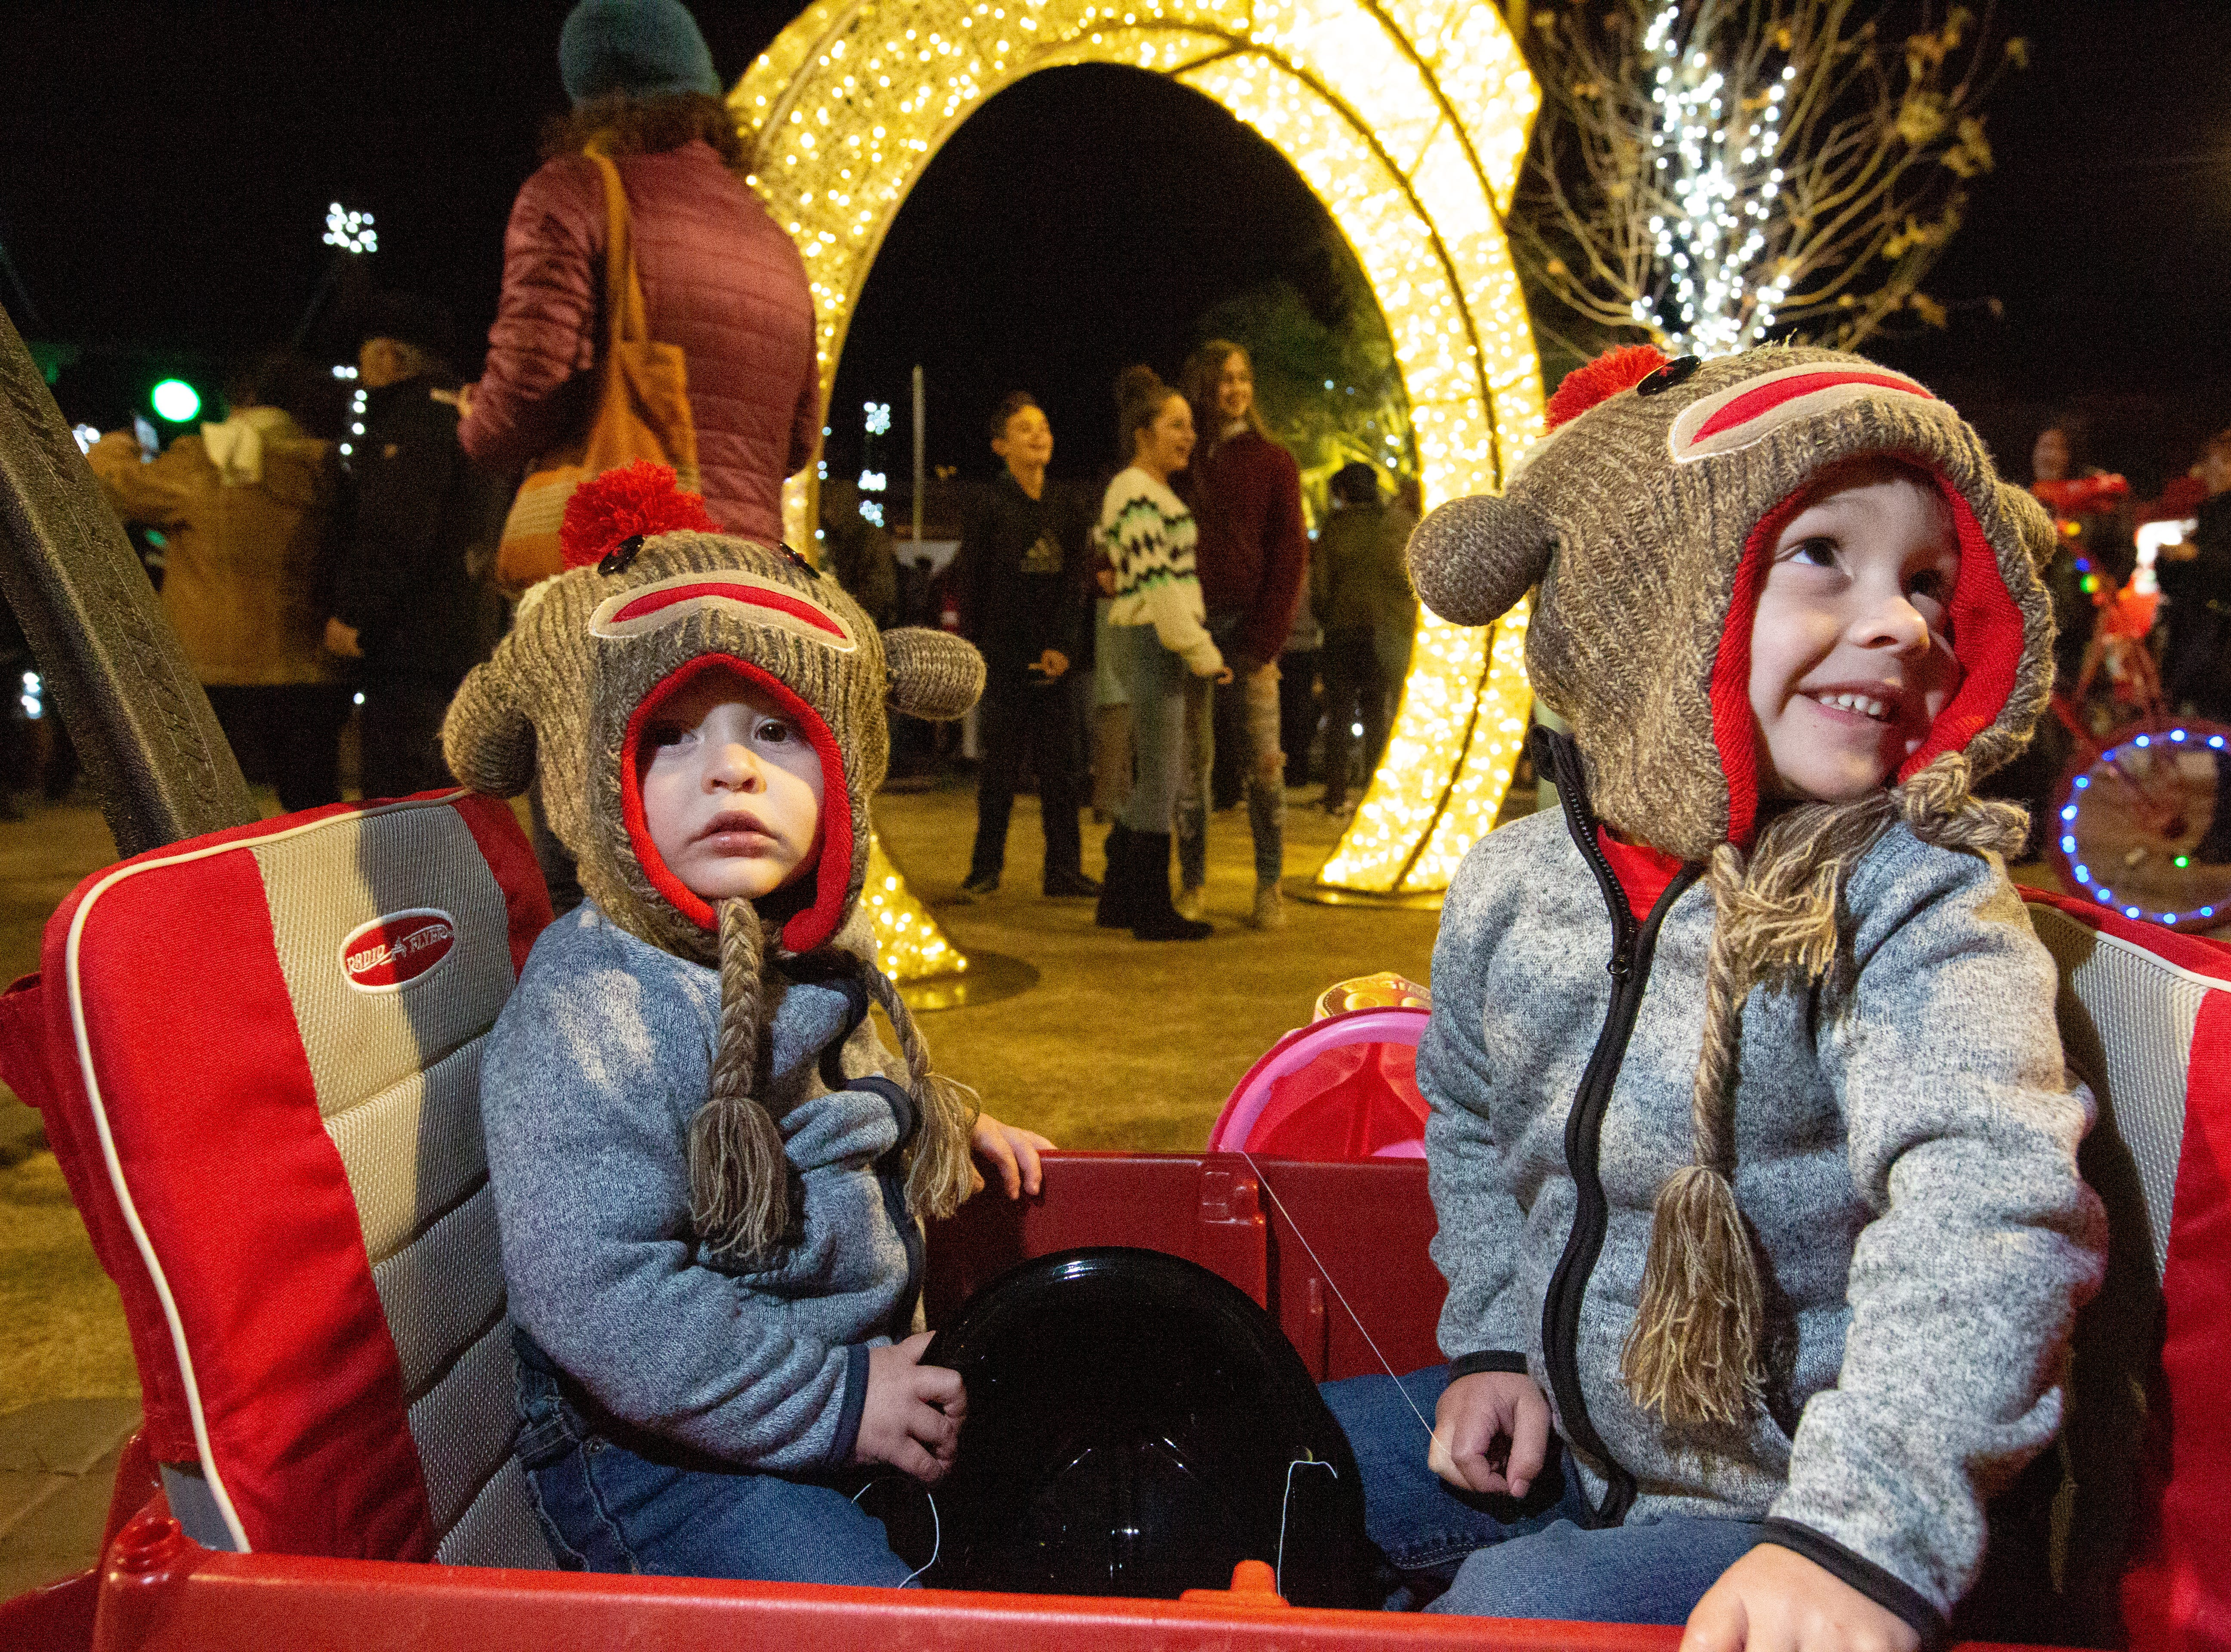 Parker Cuenca, left, 15 months, and his brother Tanner, 3, attend The Christmas in Cruces Tree Lighting Extravaganza on Saturday, Dec. 1, 2018 at the Plaza de Las Cruces.